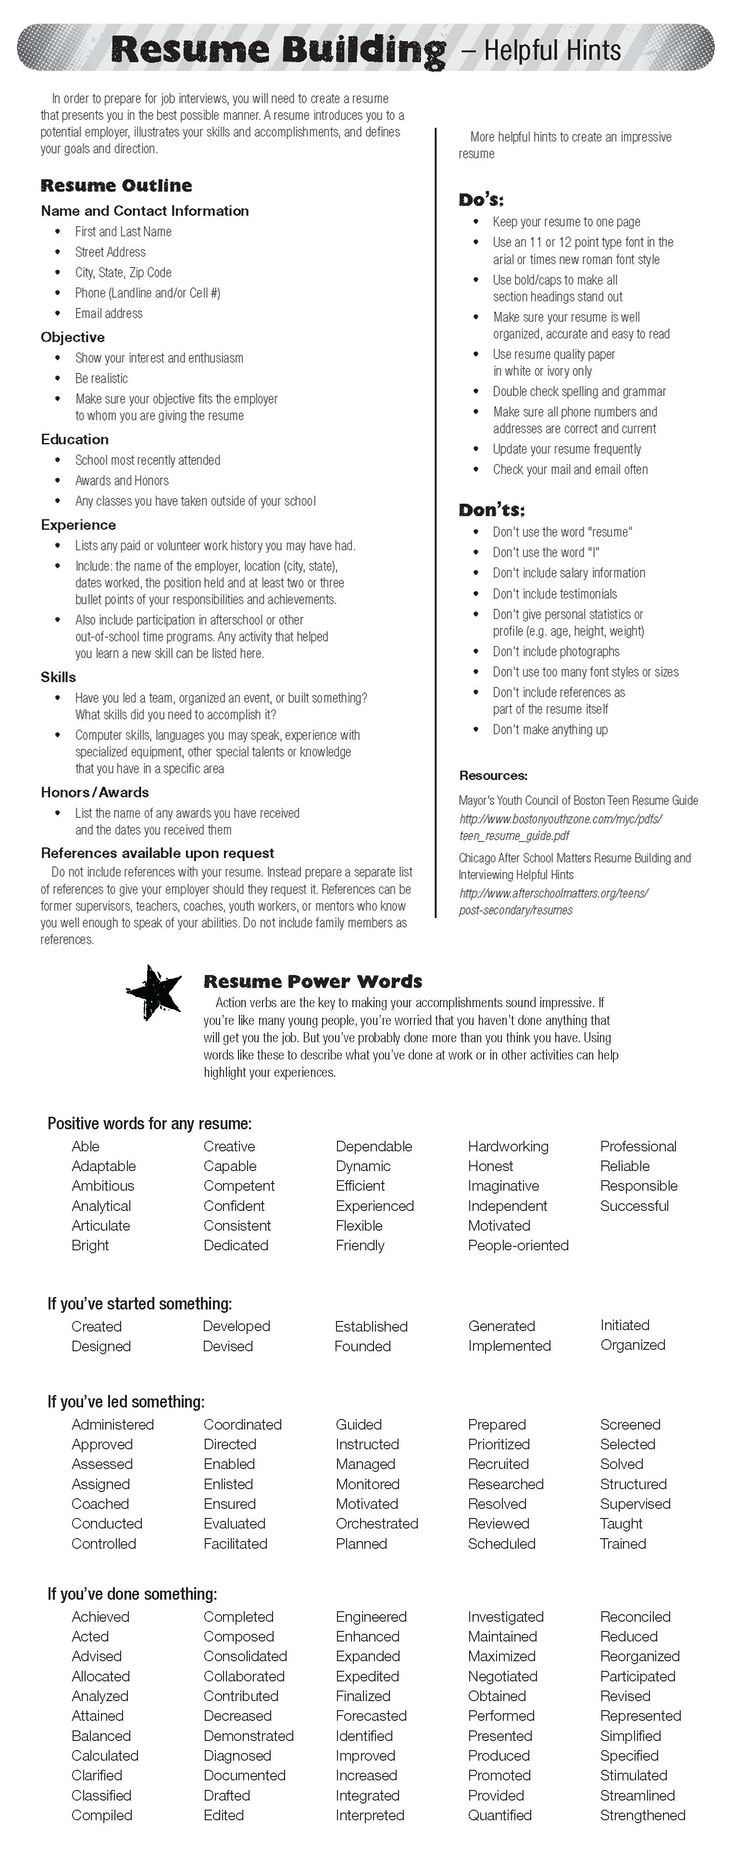 Opposenewapstandardsus  Nice  Ideas About Resume On Pinterest  Cv Format Resume Cv And  With Handsome  Ideas About Resume On Pinterest  Cv Format Resume Cv And Resume Templates With Comely Cna Resume Skills Also Resume Design Templates In Addition Resume Sample Objectives And Sales Resume Objective As Well As Different Types Of Resumes Additionally How To Right A Resume From Pinterestcom With Opposenewapstandardsus  Handsome  Ideas About Resume On Pinterest  Cv Format Resume Cv And  With Comely  Ideas About Resume On Pinterest  Cv Format Resume Cv And Resume Templates And Nice Cna Resume Skills Also Resume Design Templates In Addition Resume Sample Objectives From Pinterestcom